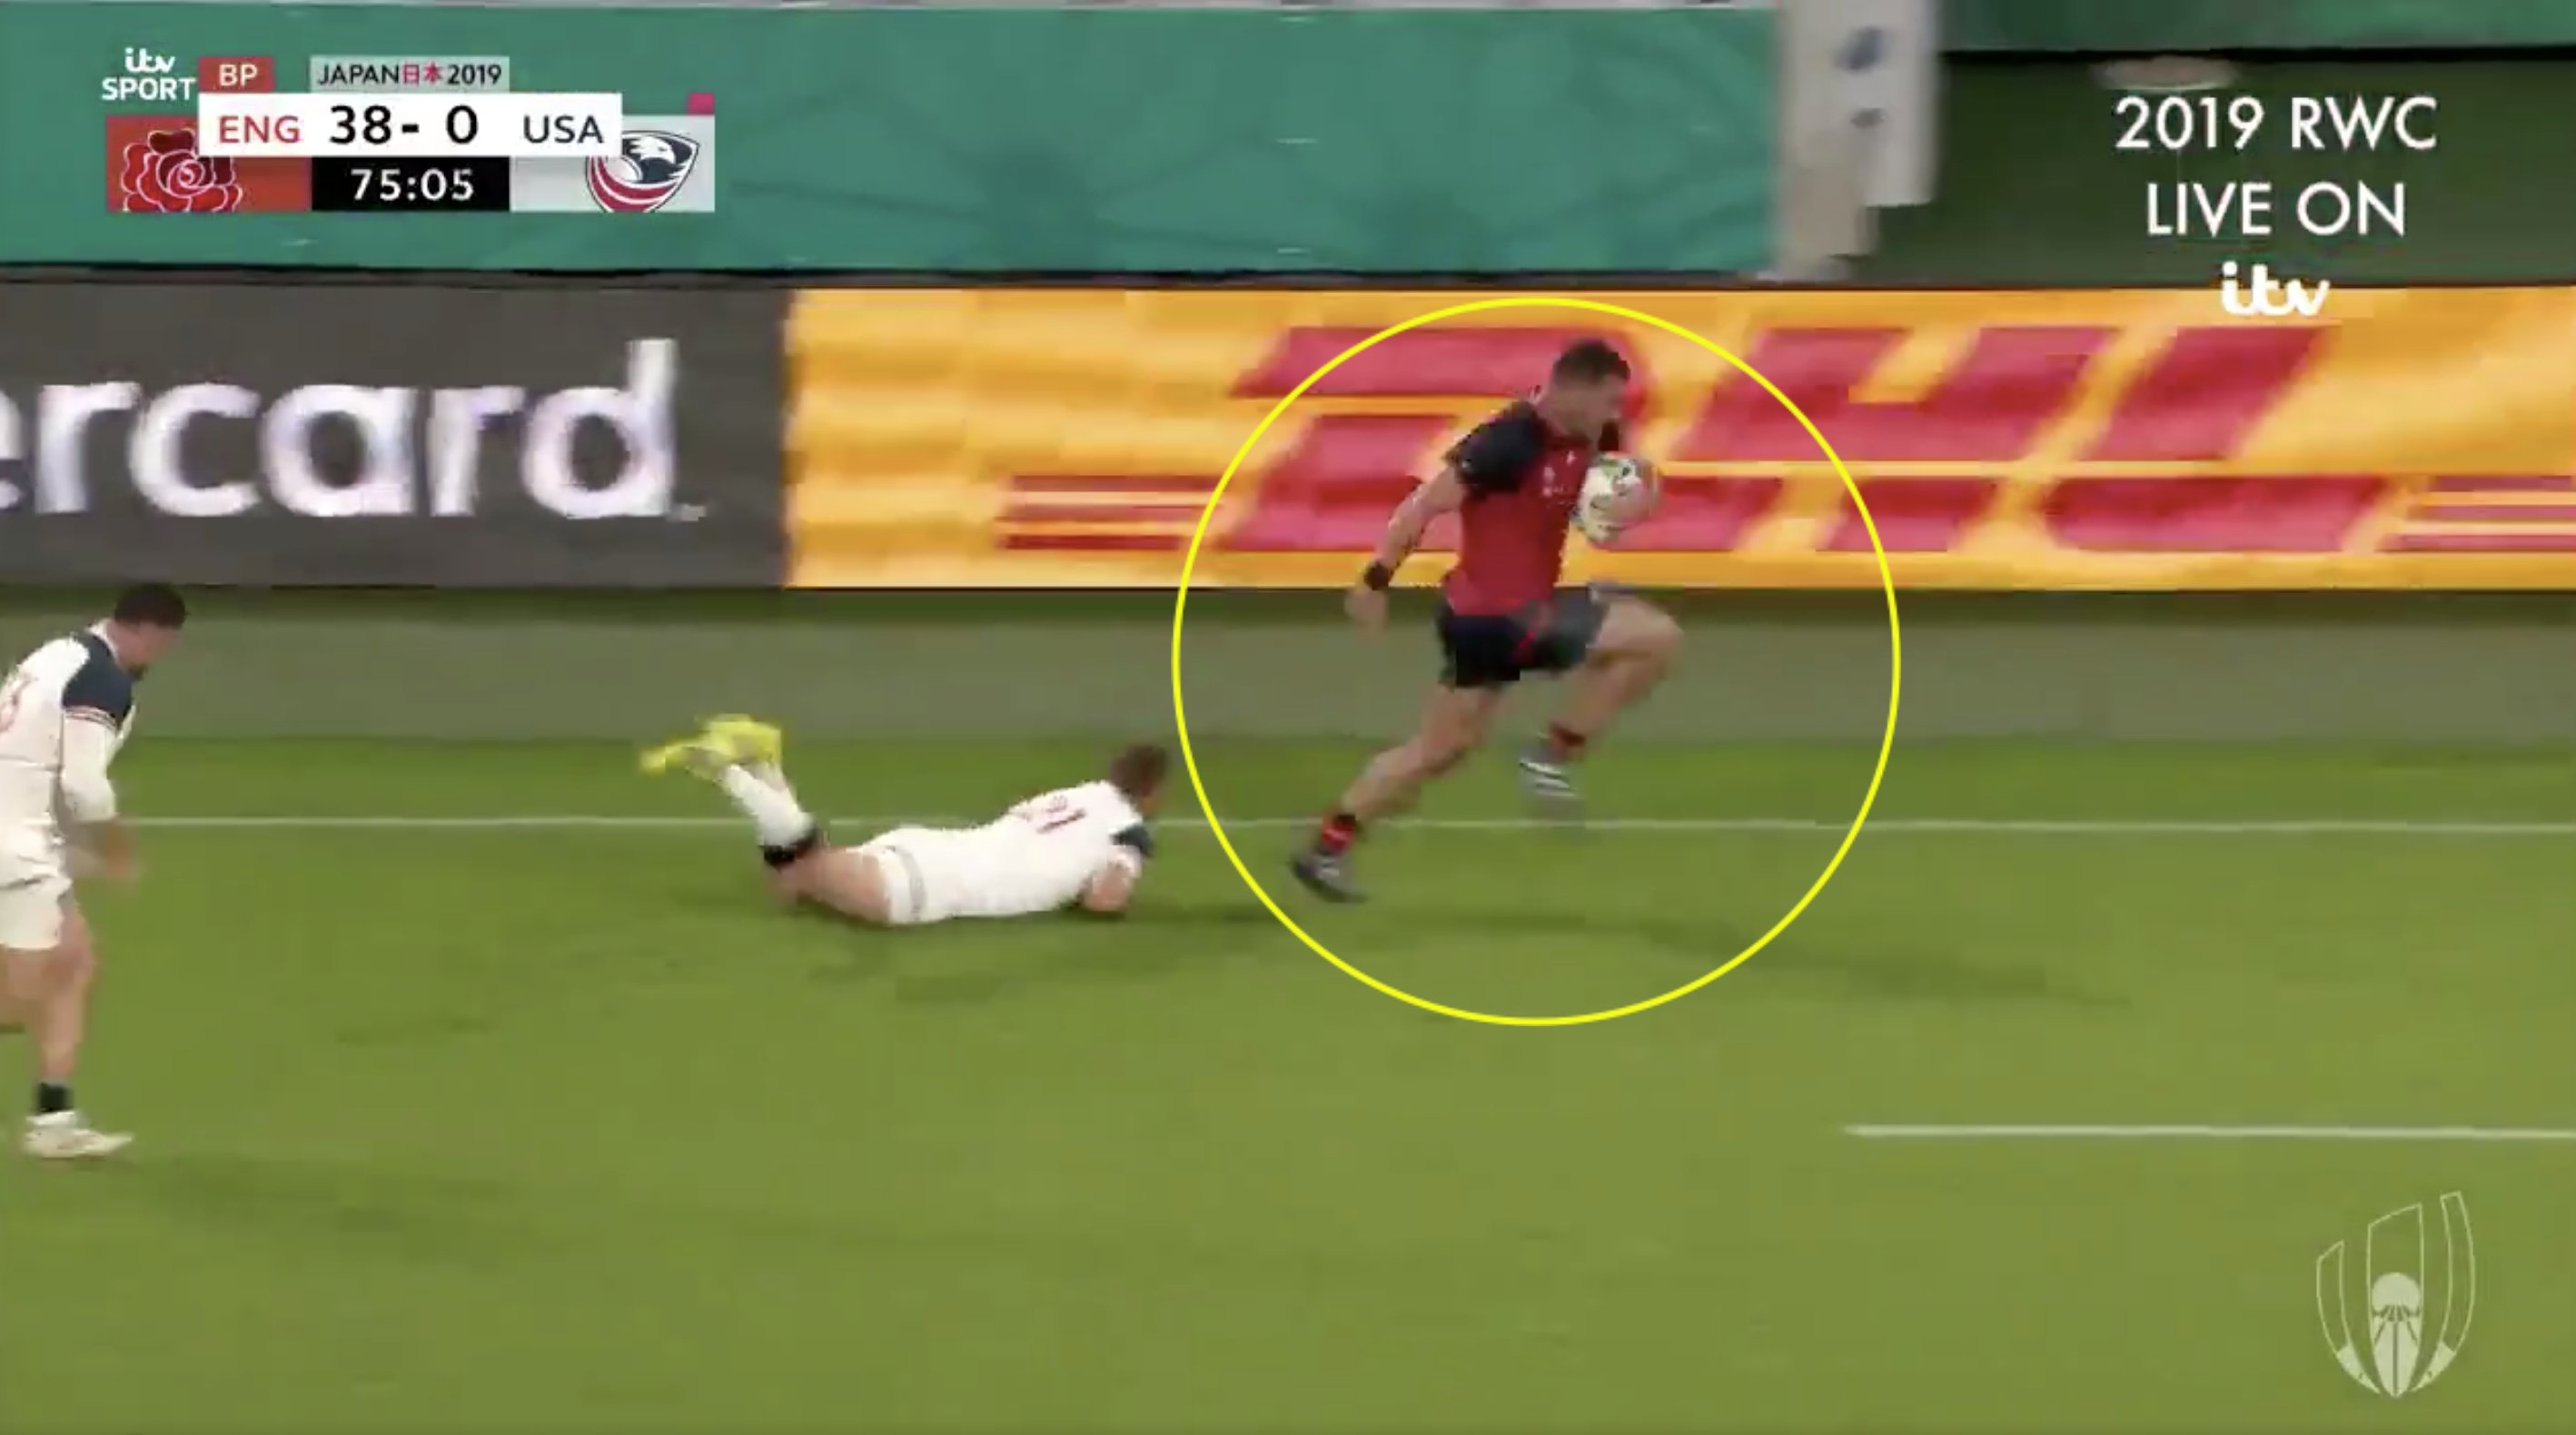 Everyone is raving about Ellis Genge and his terrifying solo run